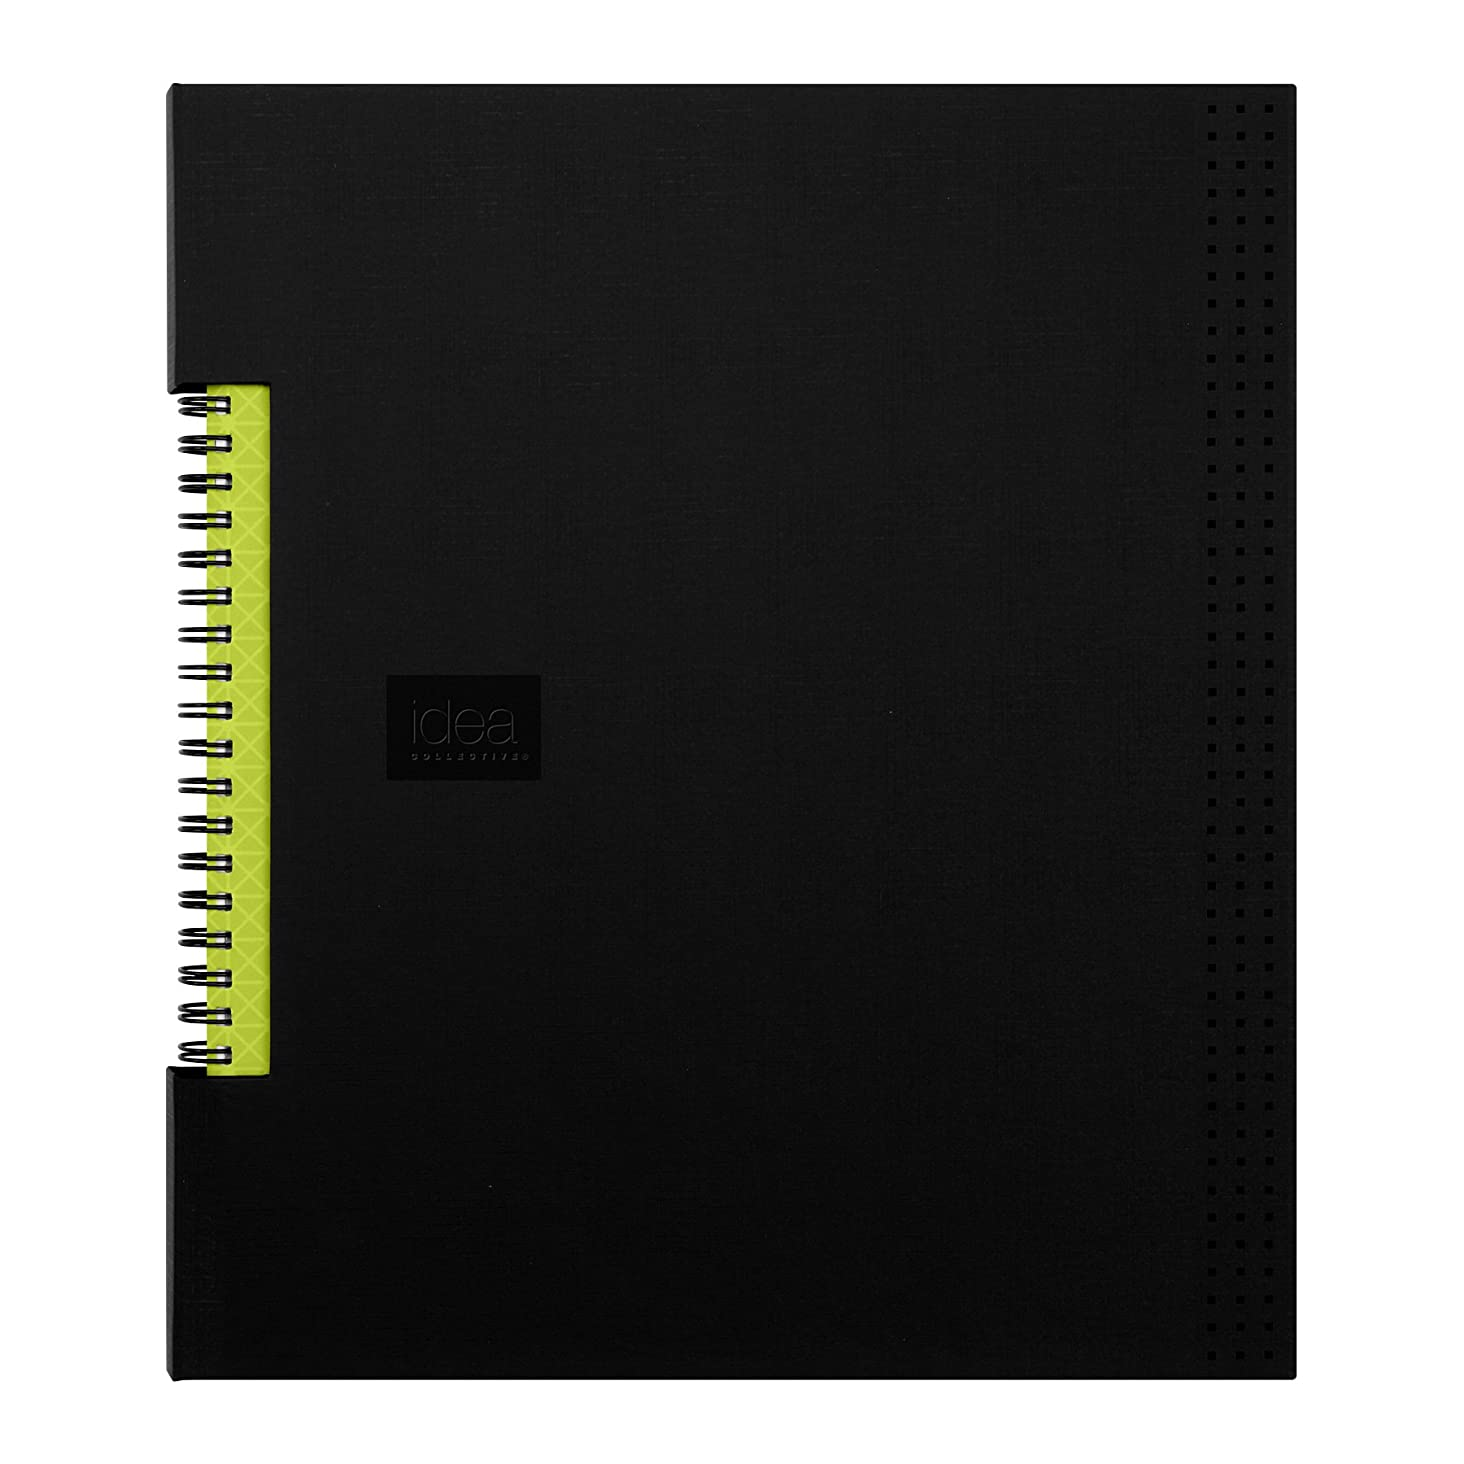 Oxford Idea Collective Business Notebook, 11 x 8.5, Double Wire, Case Bound, Black, 80 sheets (56895)